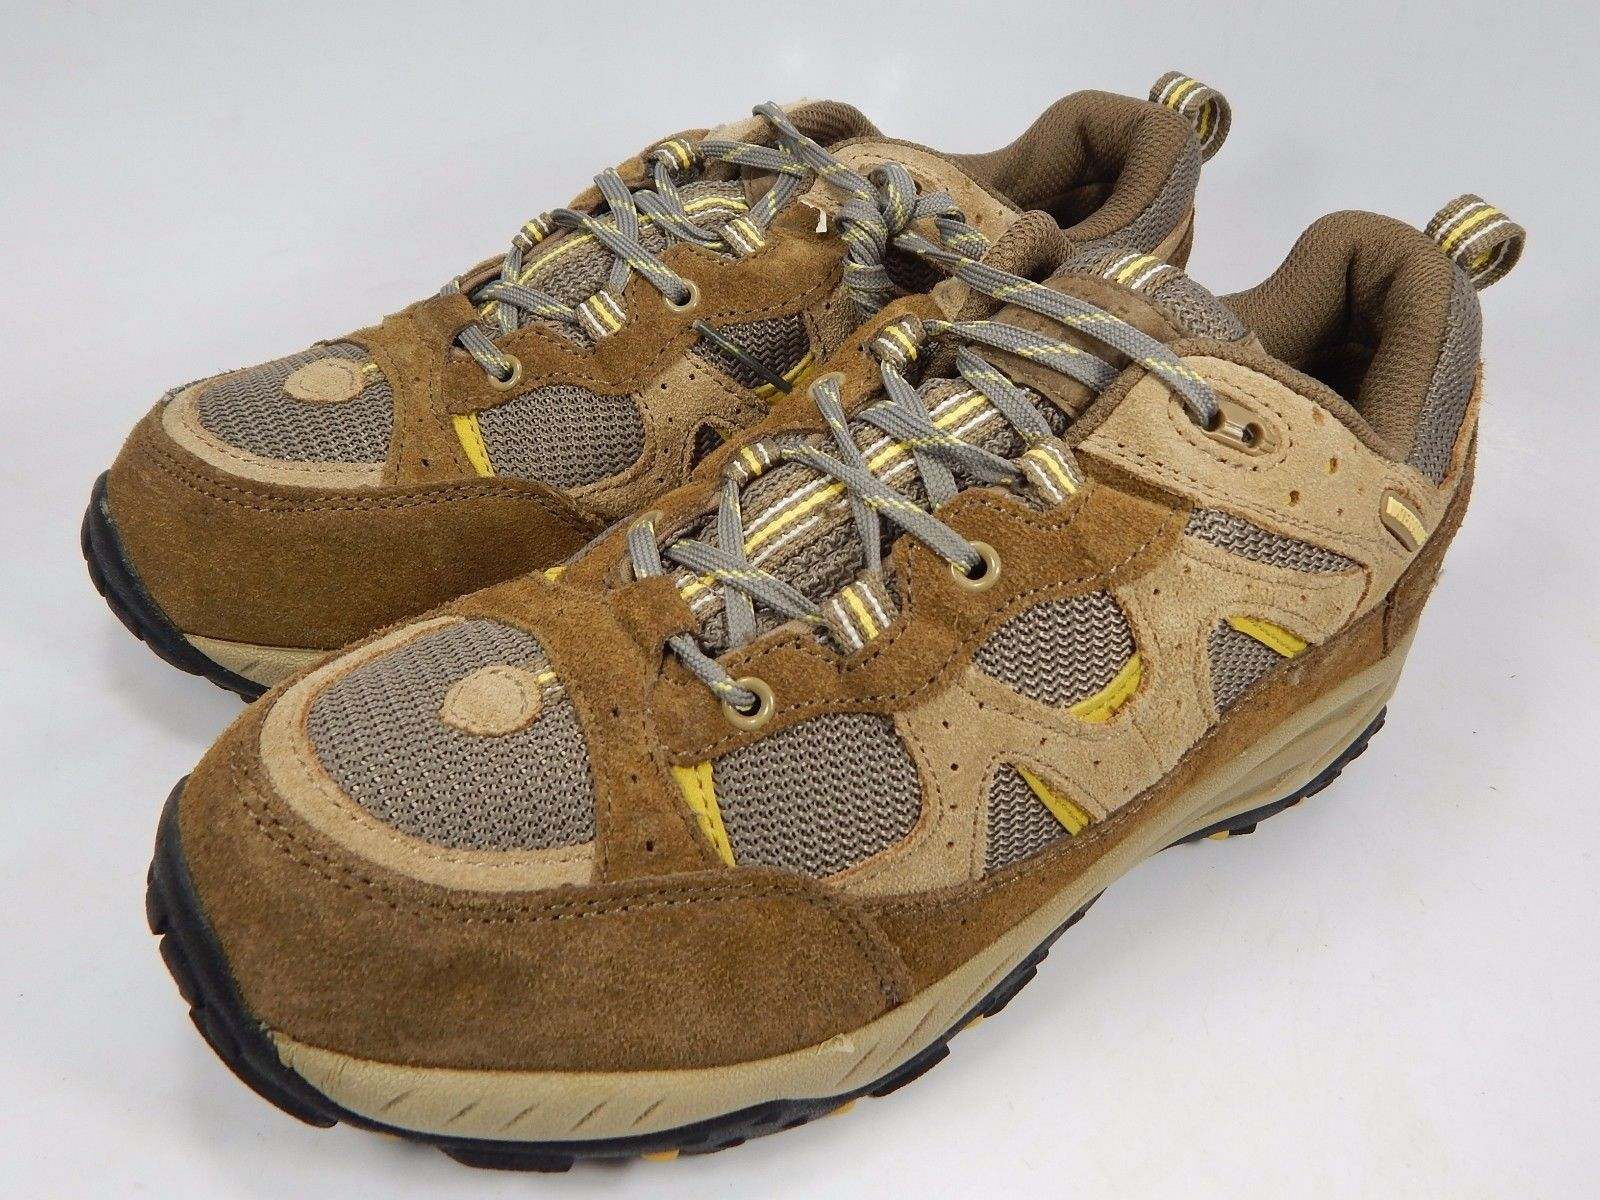 Alpine Design Women's Waterproof Hiking Trail Shoes Size US 8 M (B) Beige Brown